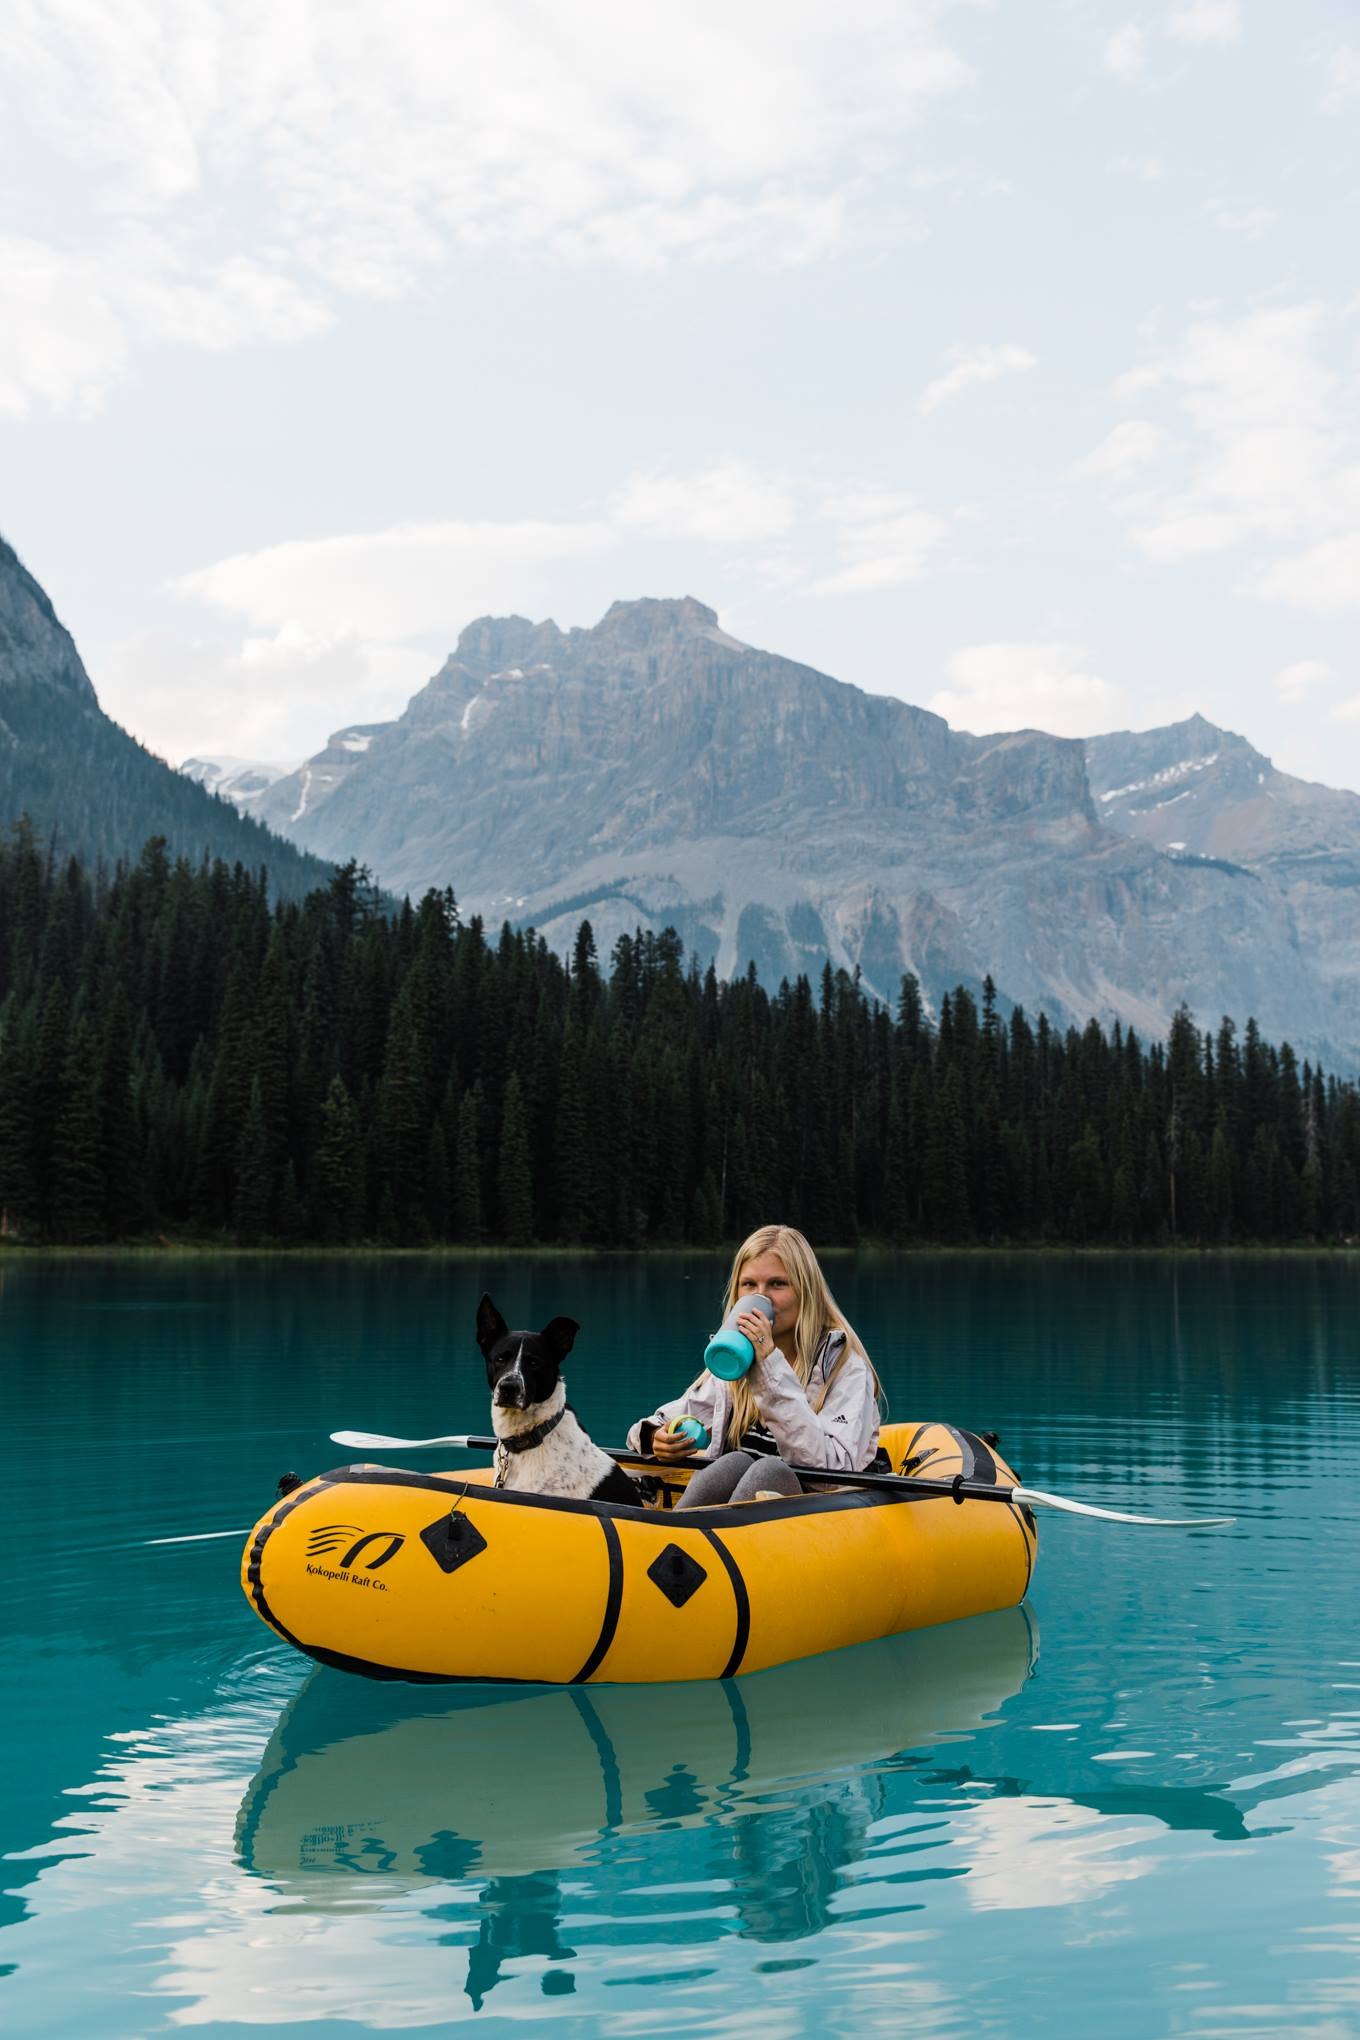 traveling photographers exploring lakes and mountains in canada